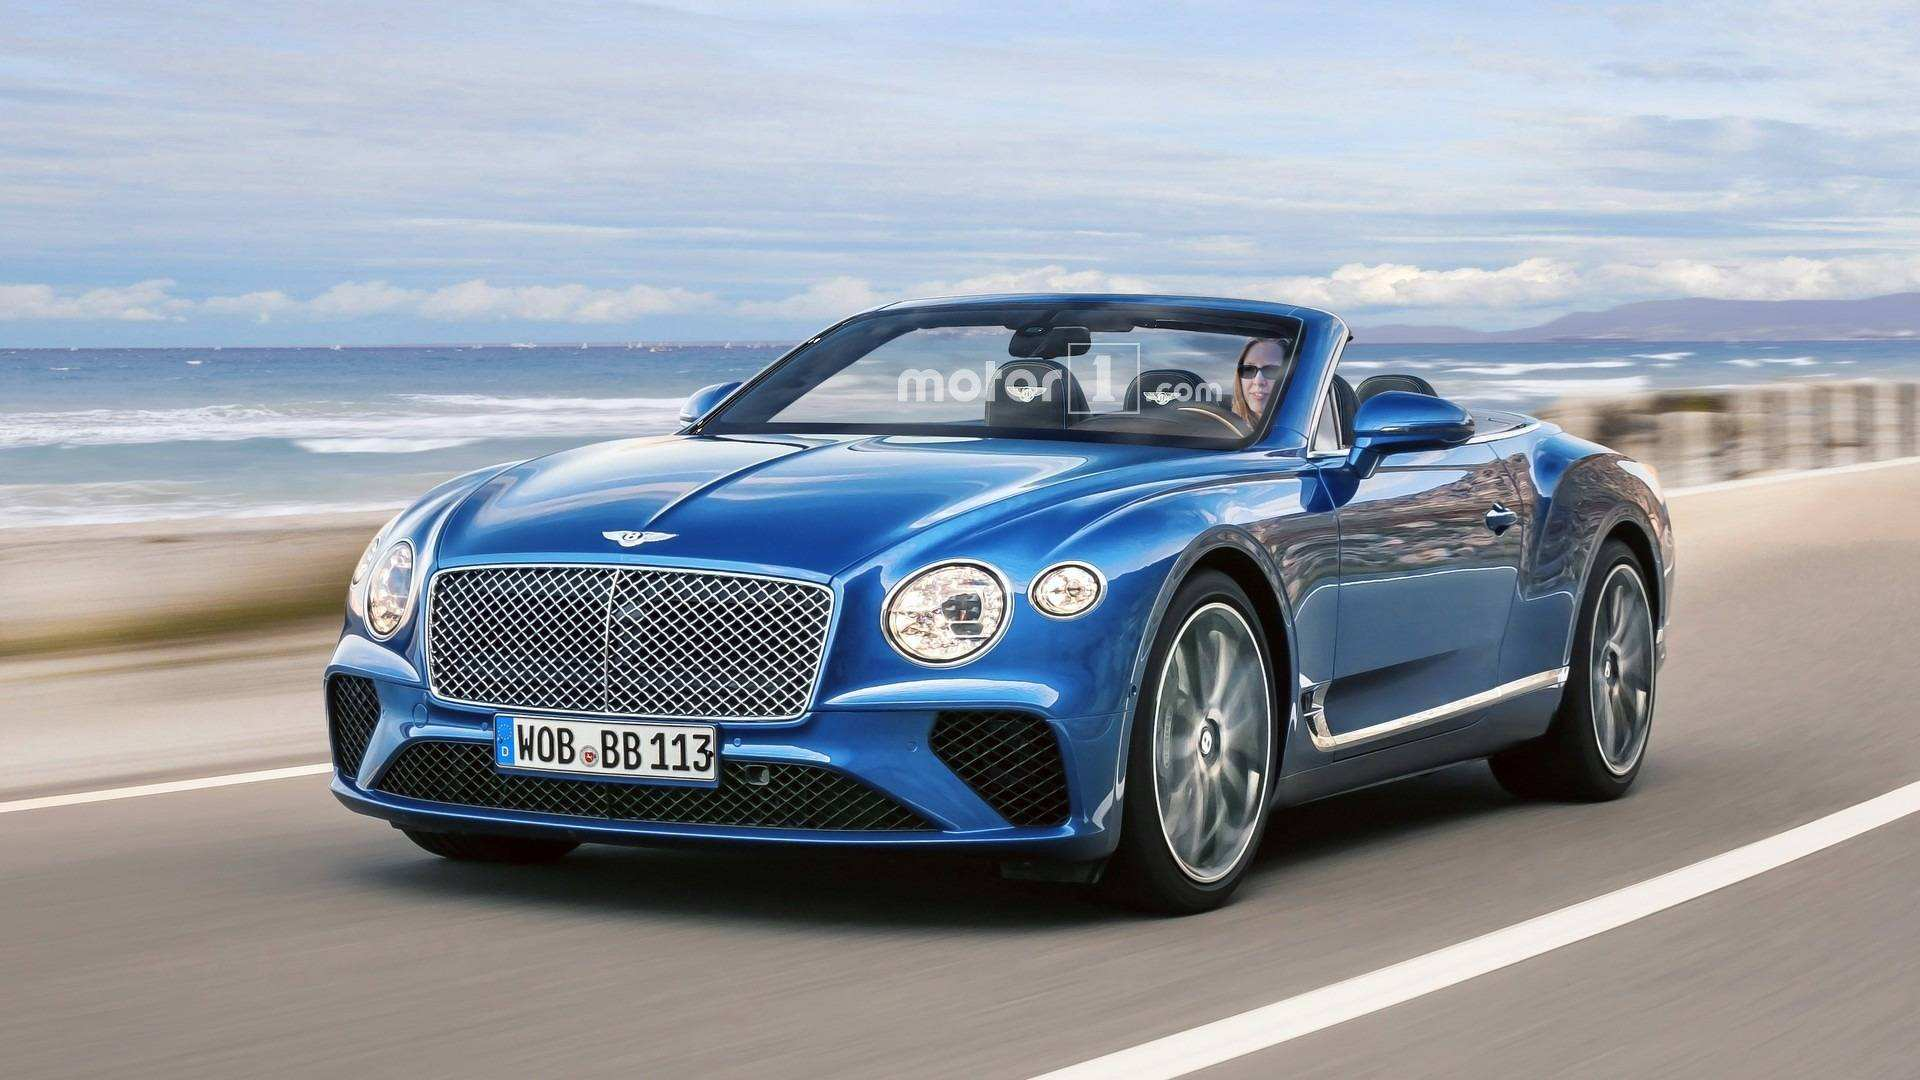 36 All New 2019 Bentley Continental Gt V8 Release Date with 2019 Bentley Continental Gt V8